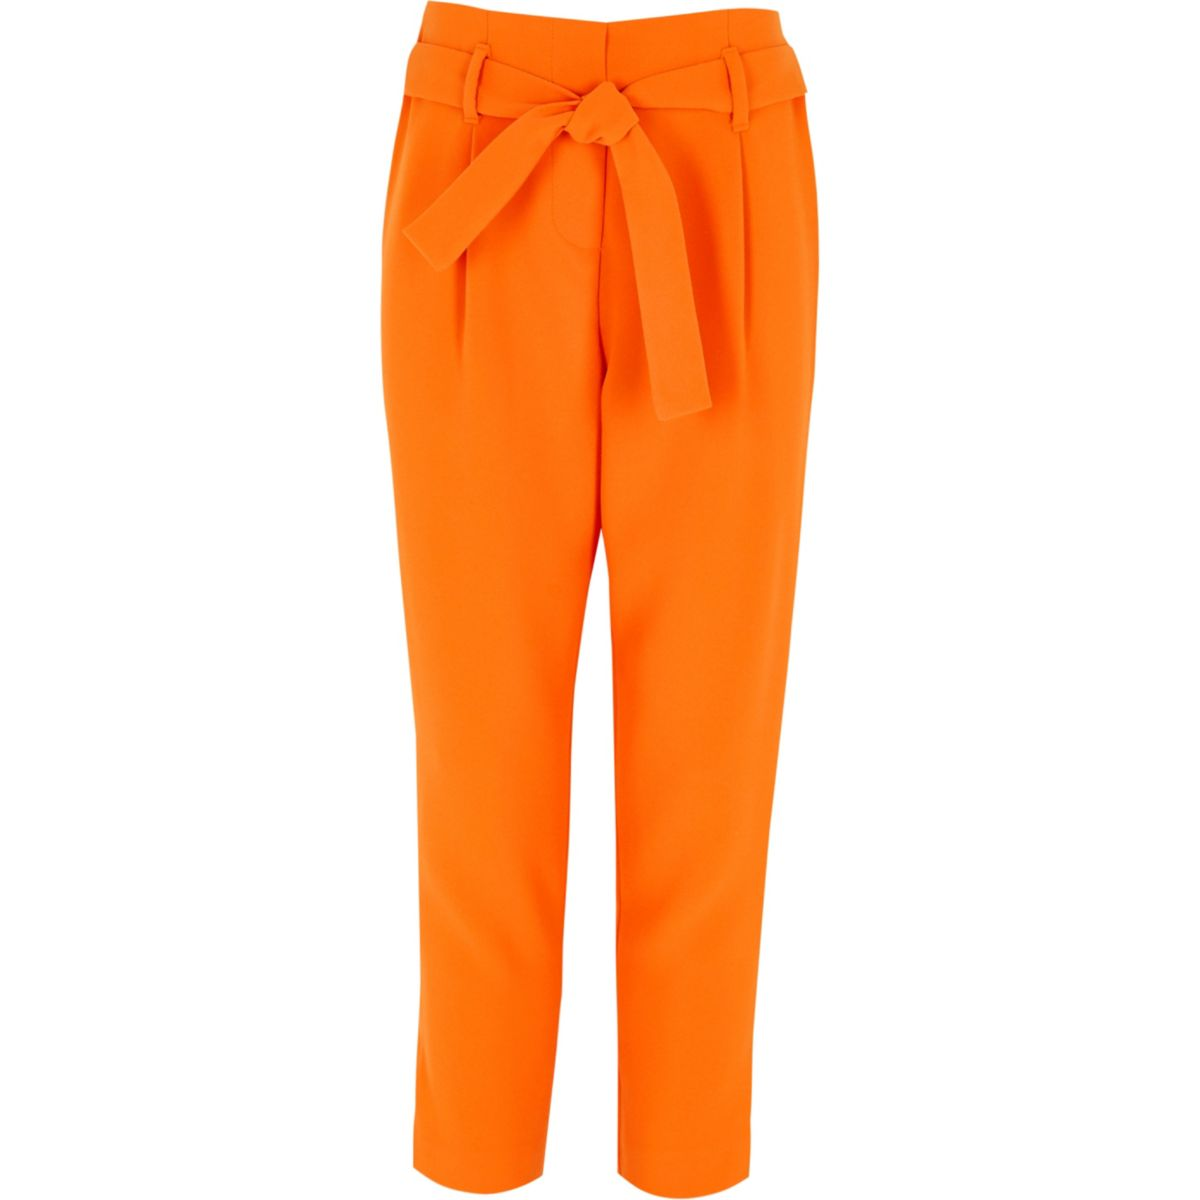 Girls orange tie waist tapered pants